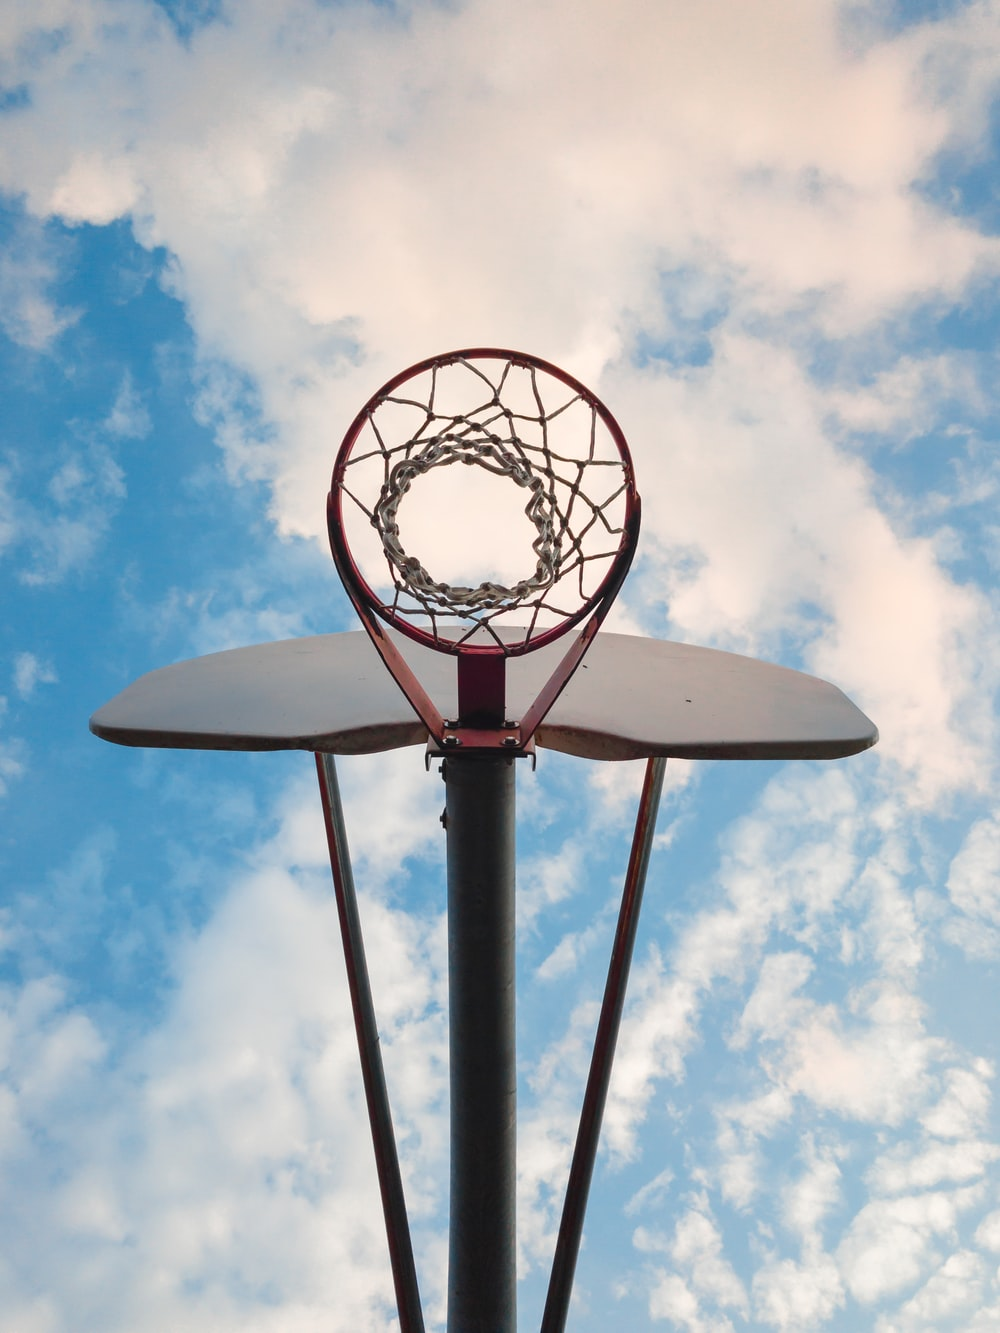 low-angle photo of red and white basketball hoop